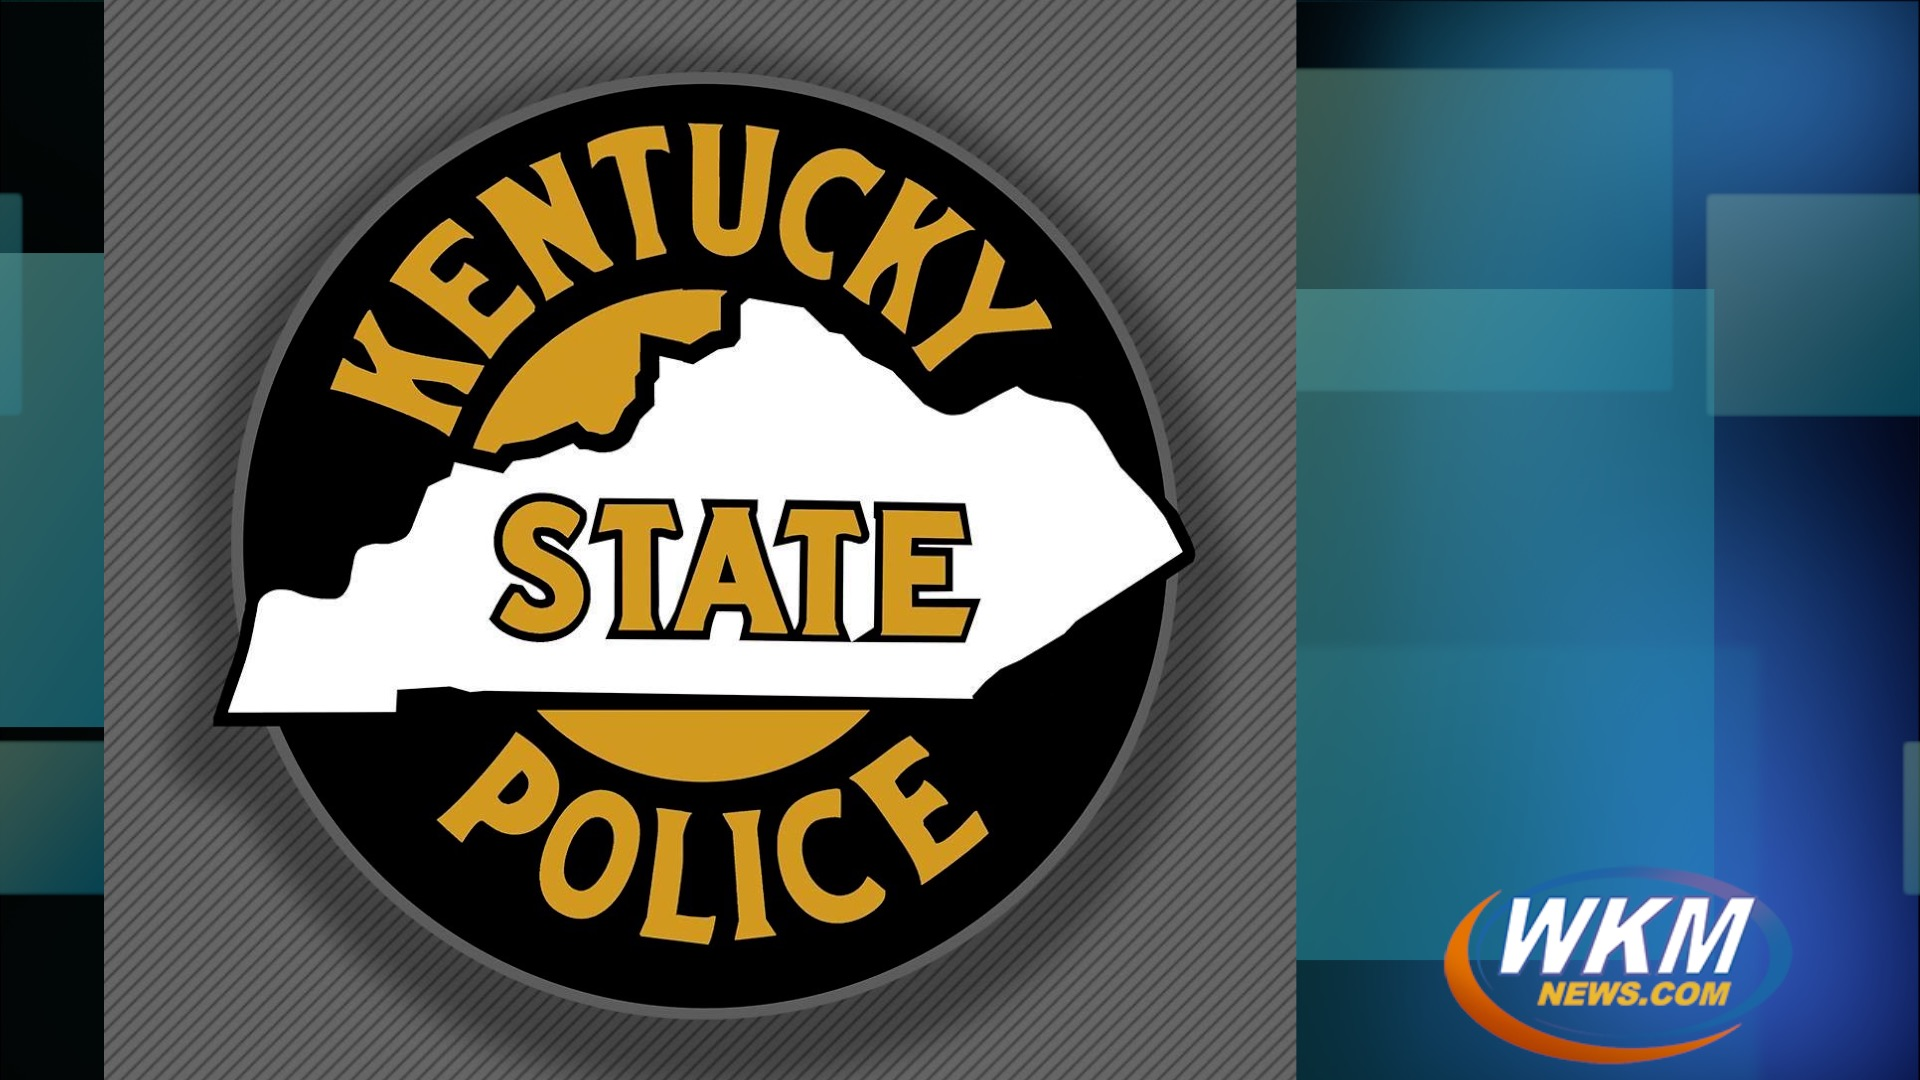 Kentucky State Police Investigates Fatal Shooting of Madison Man